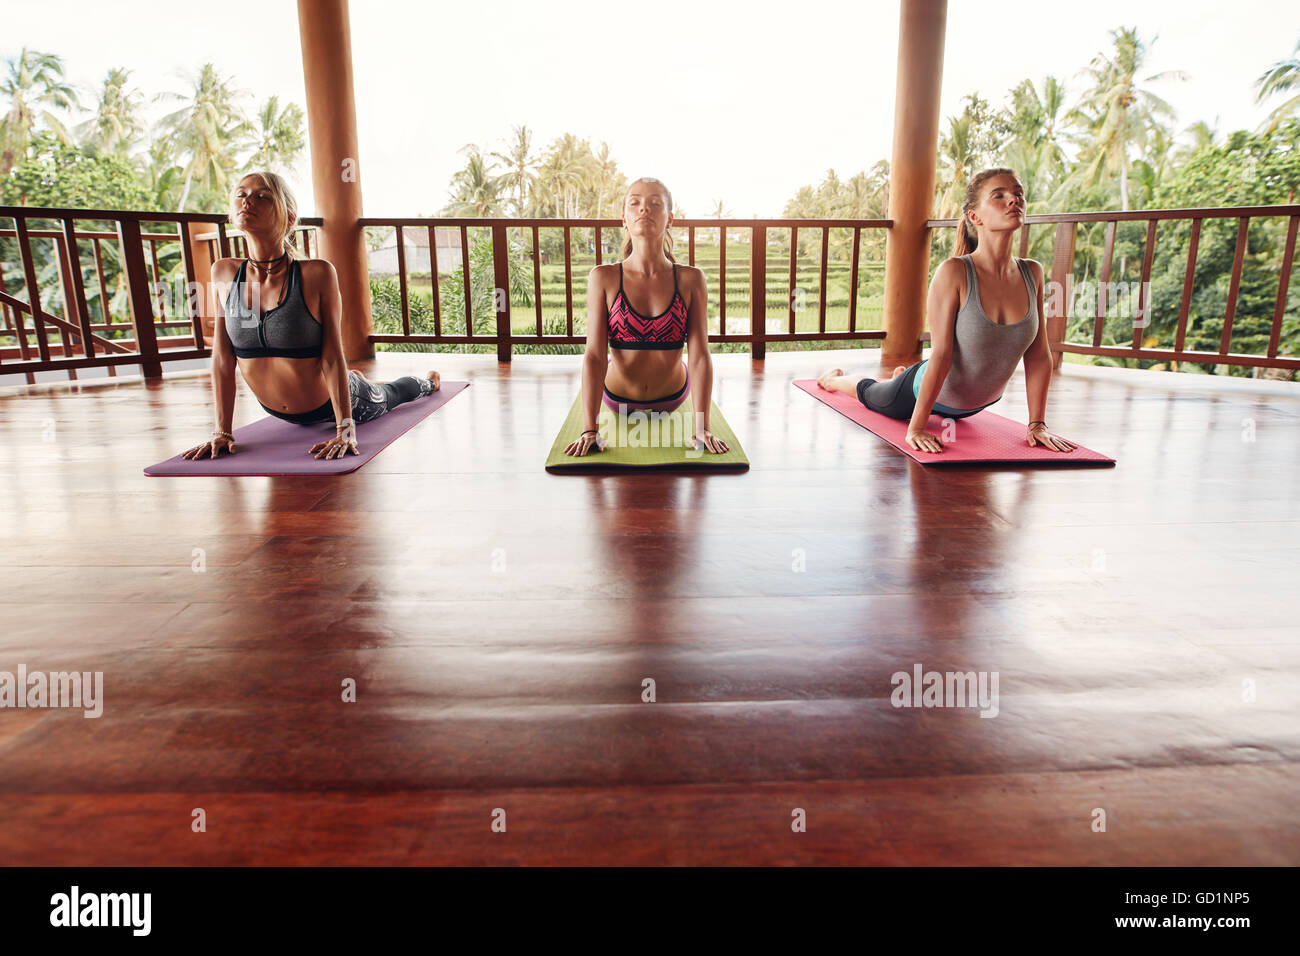 Group of people doing yoga. Practicing cobra pose at yoga class. Wellness and healthy lifestyle. - Stock Image